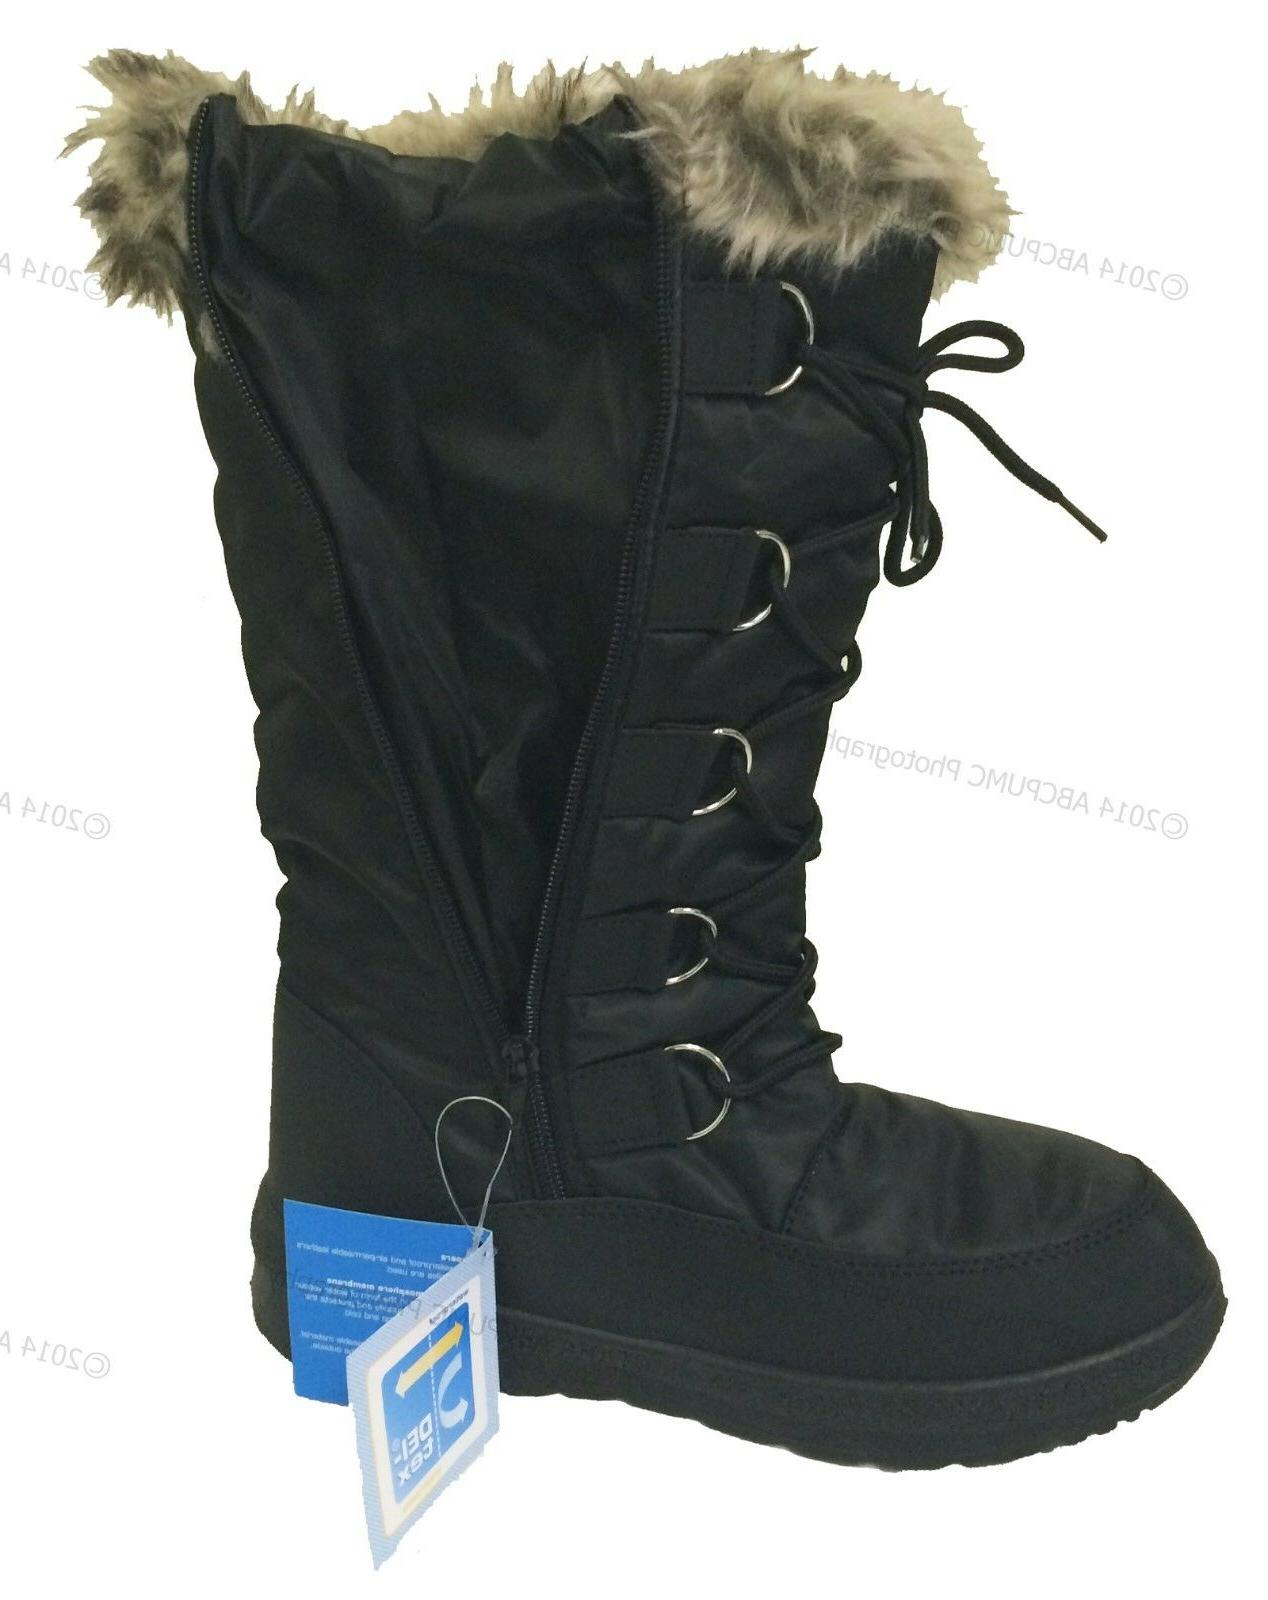 Brand New Boots Insulated Waterproof Shoe